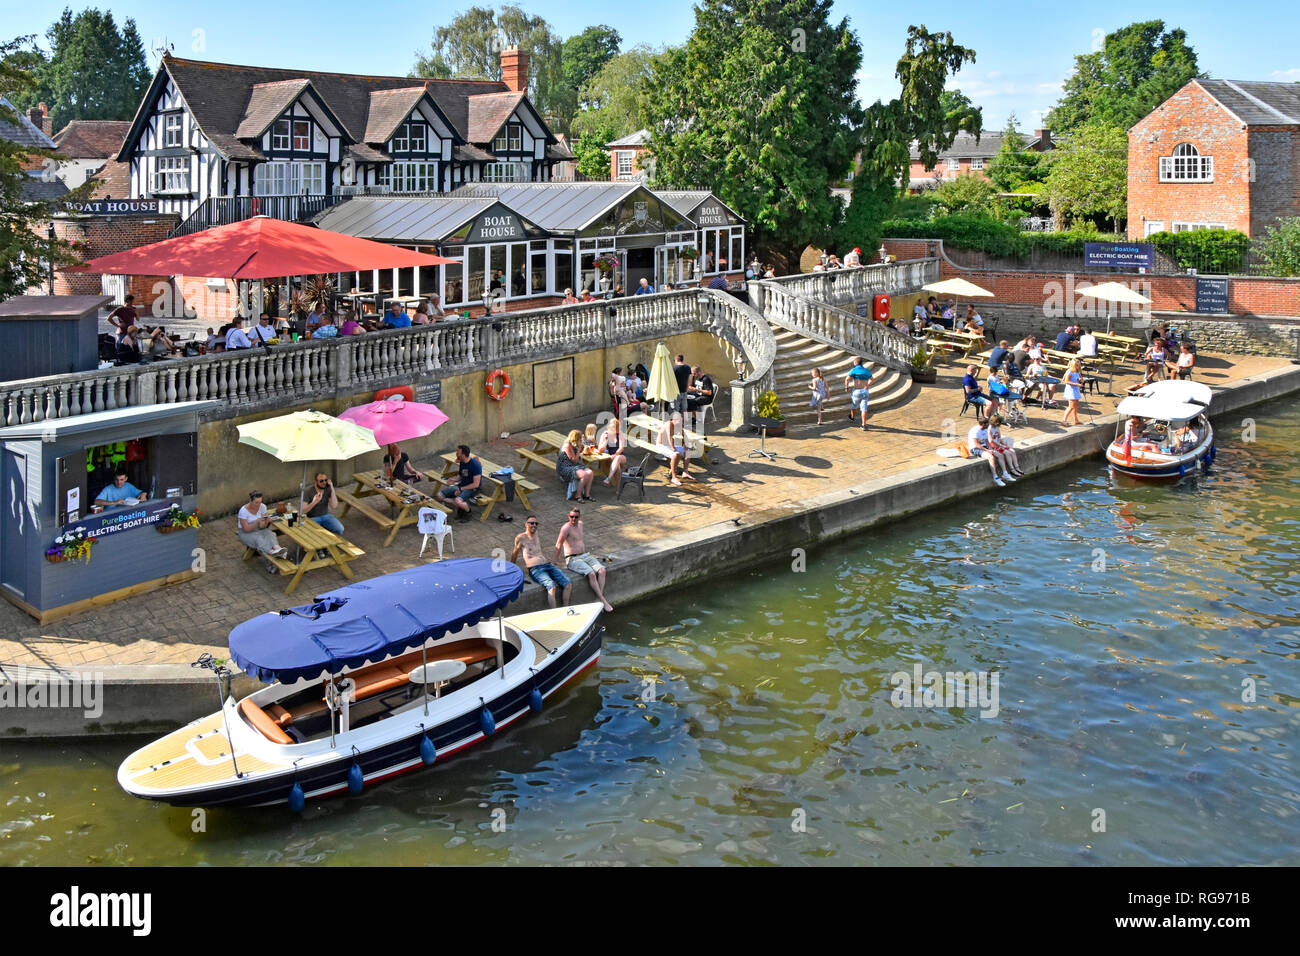 Looking down from above at electric boat hire & pub business diverse group of people hot summer day at River Thames Wallingford Oxfordshire England UK - Stock Image